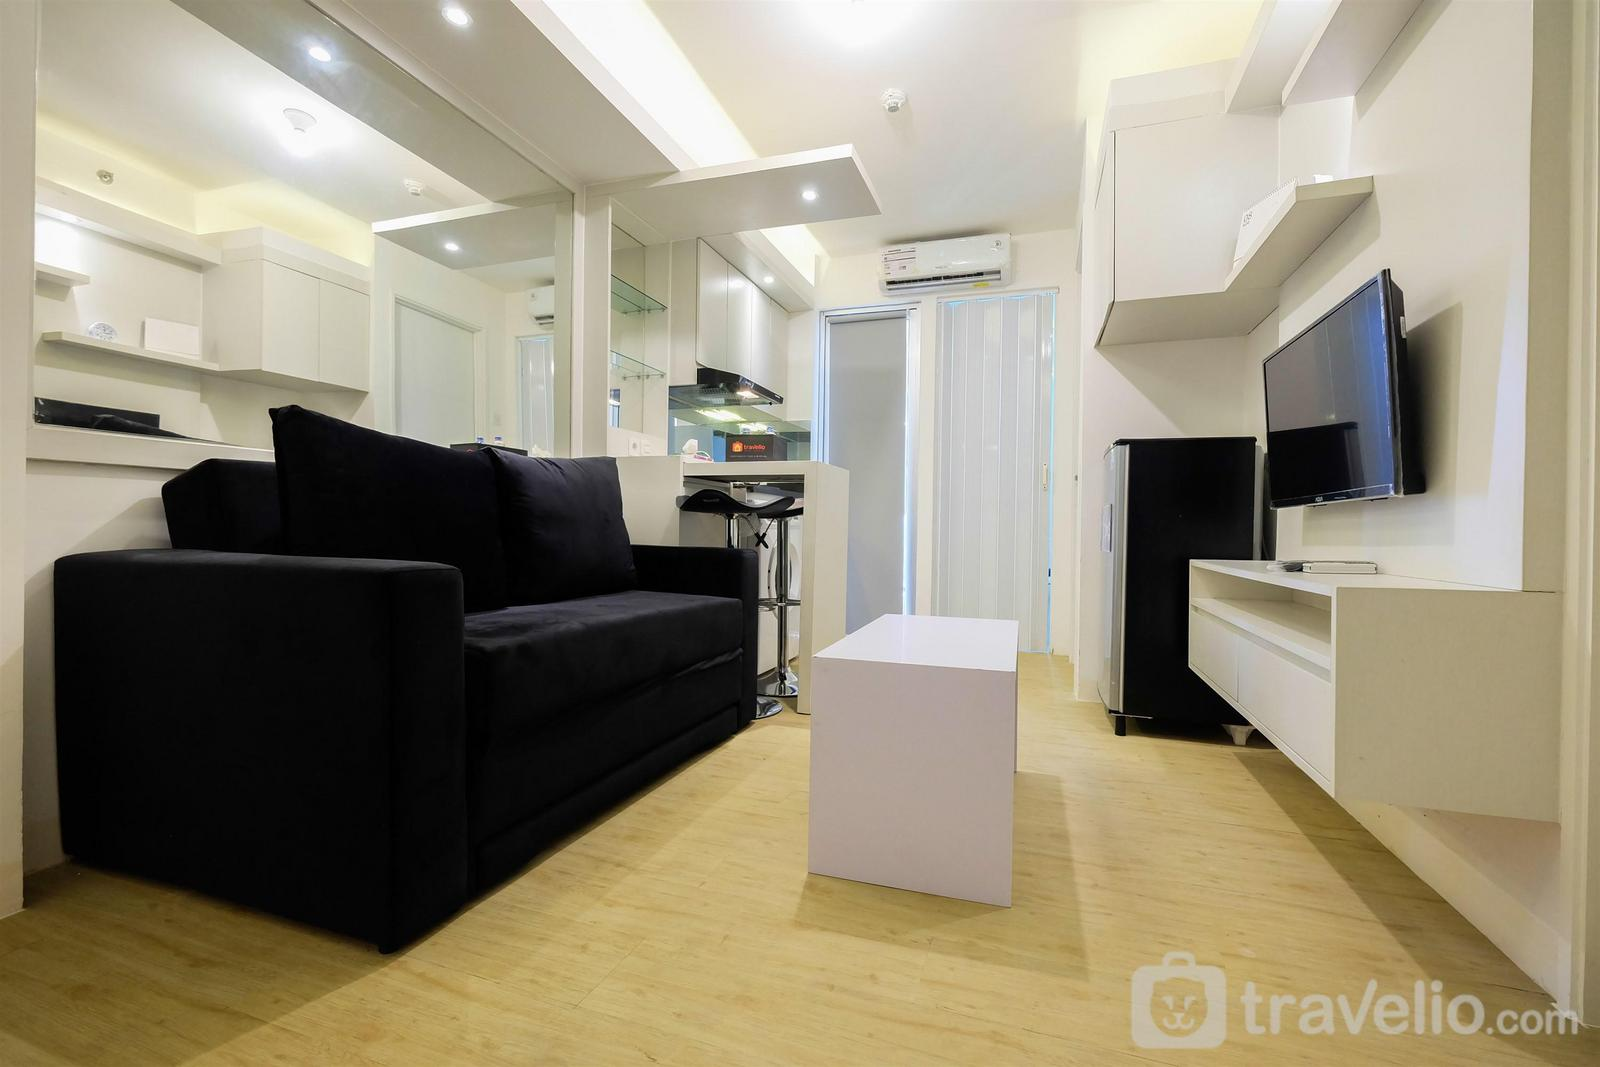 Bassura City Cipinang - Spacious 2BR Apartment Connected to Bassura City Mall By Travelio